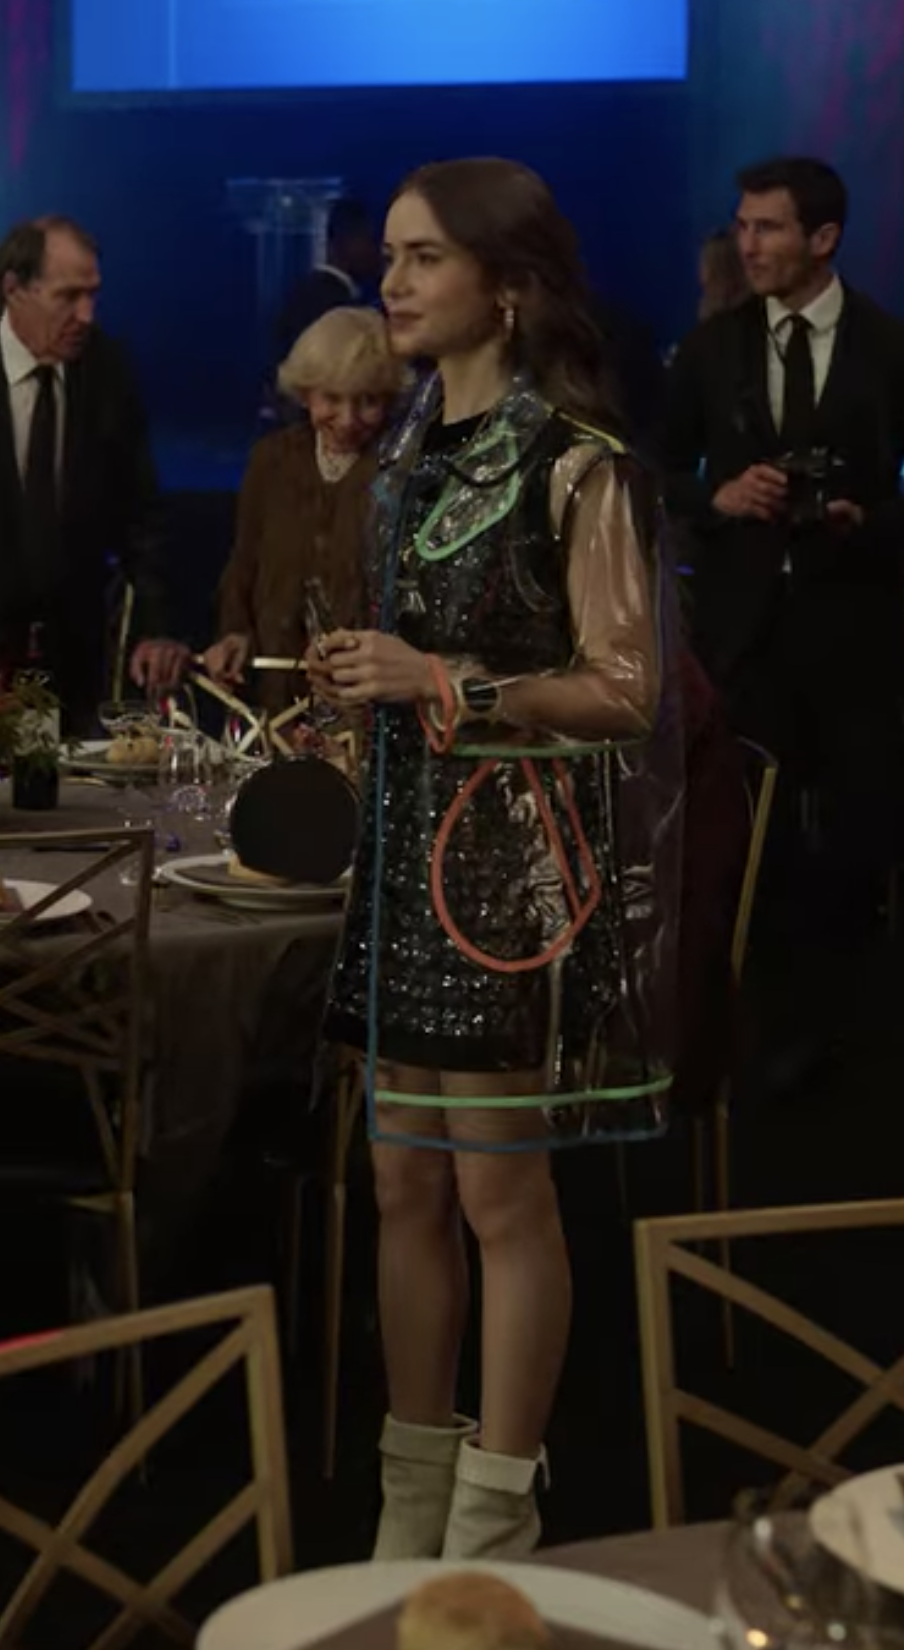 Emily is turned to the side wearing a black and silver mini sheath dress, shite calf-length boots, and a clear plastic coat with multi-colored lines running through it